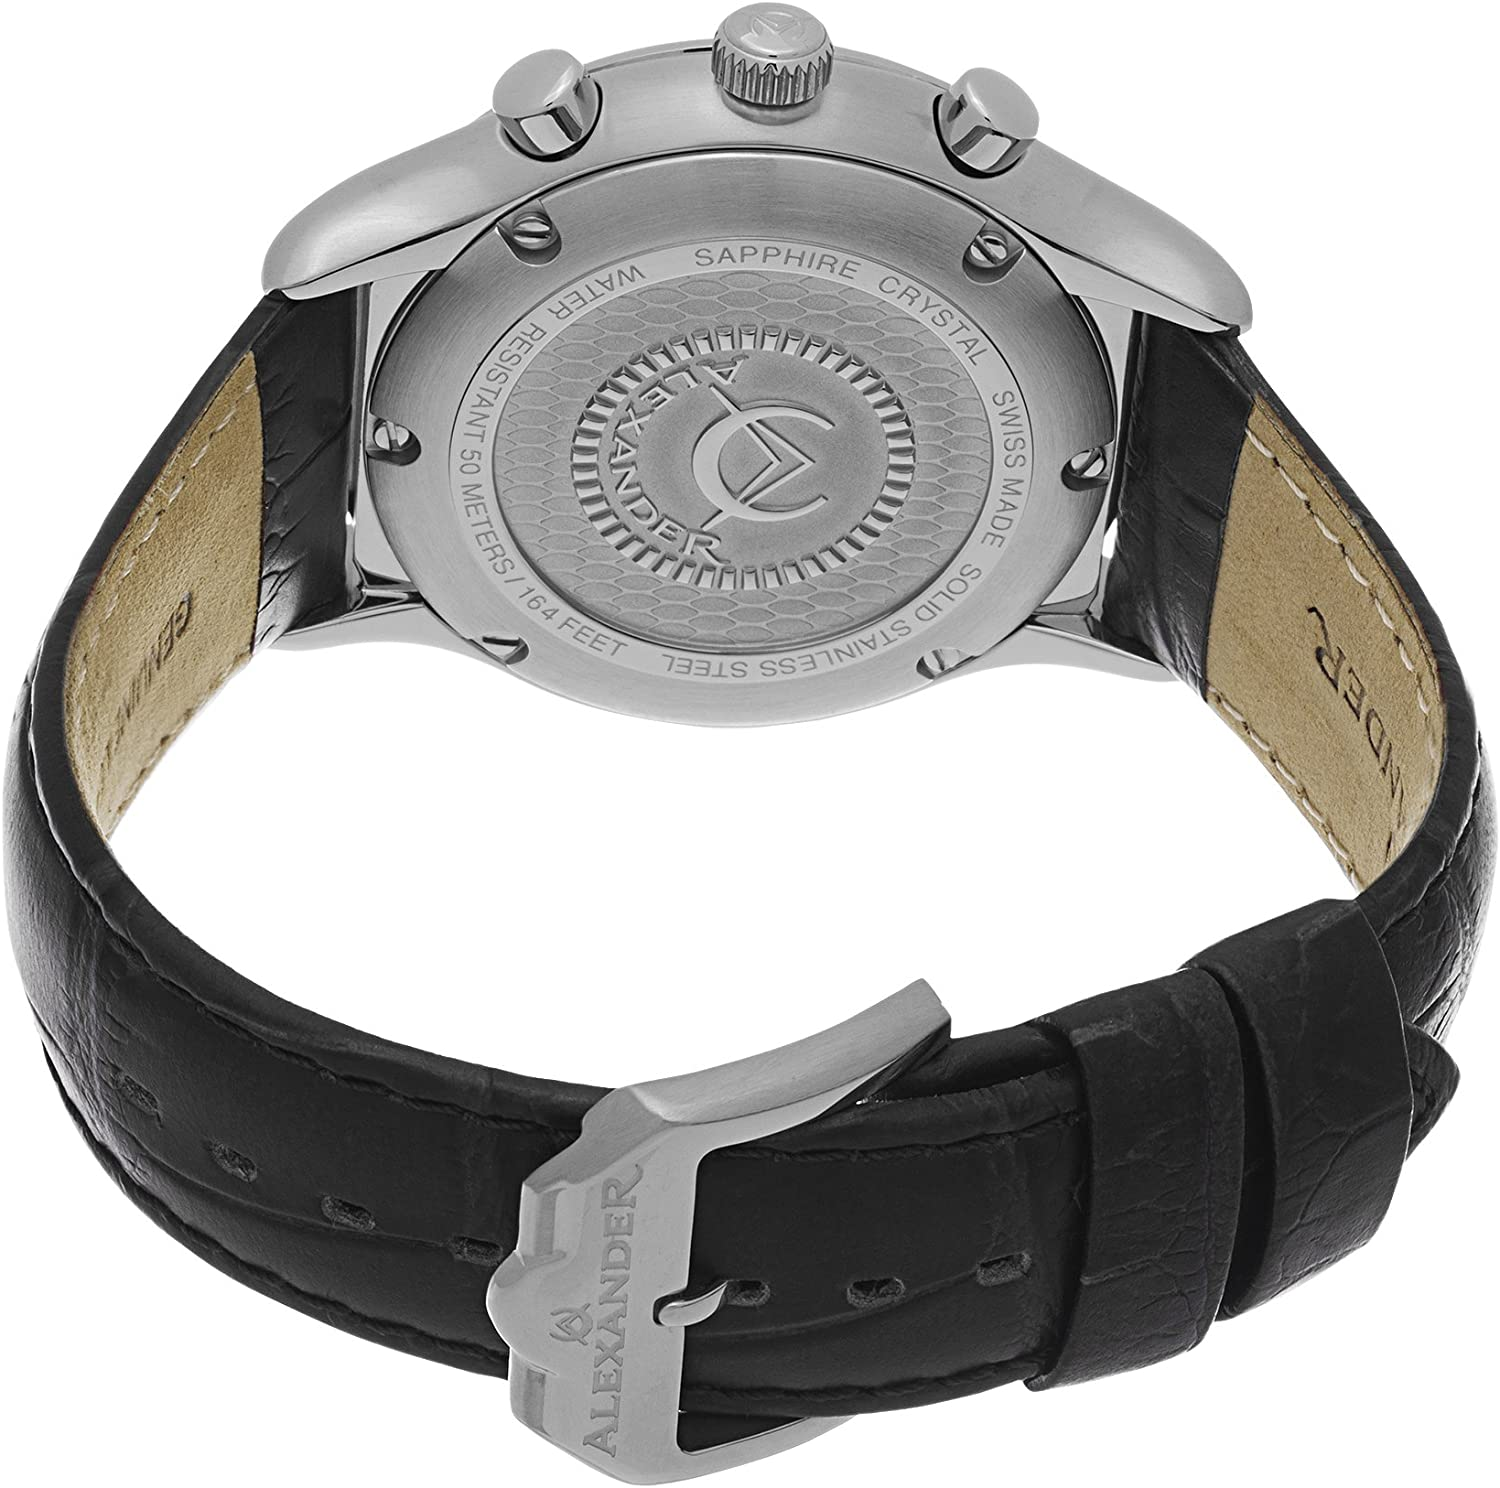 Alexander Heroic Pella Men s Multi-Function Chronograph Silver Dial Black Leather Strap Swiss Made Watch A021-02